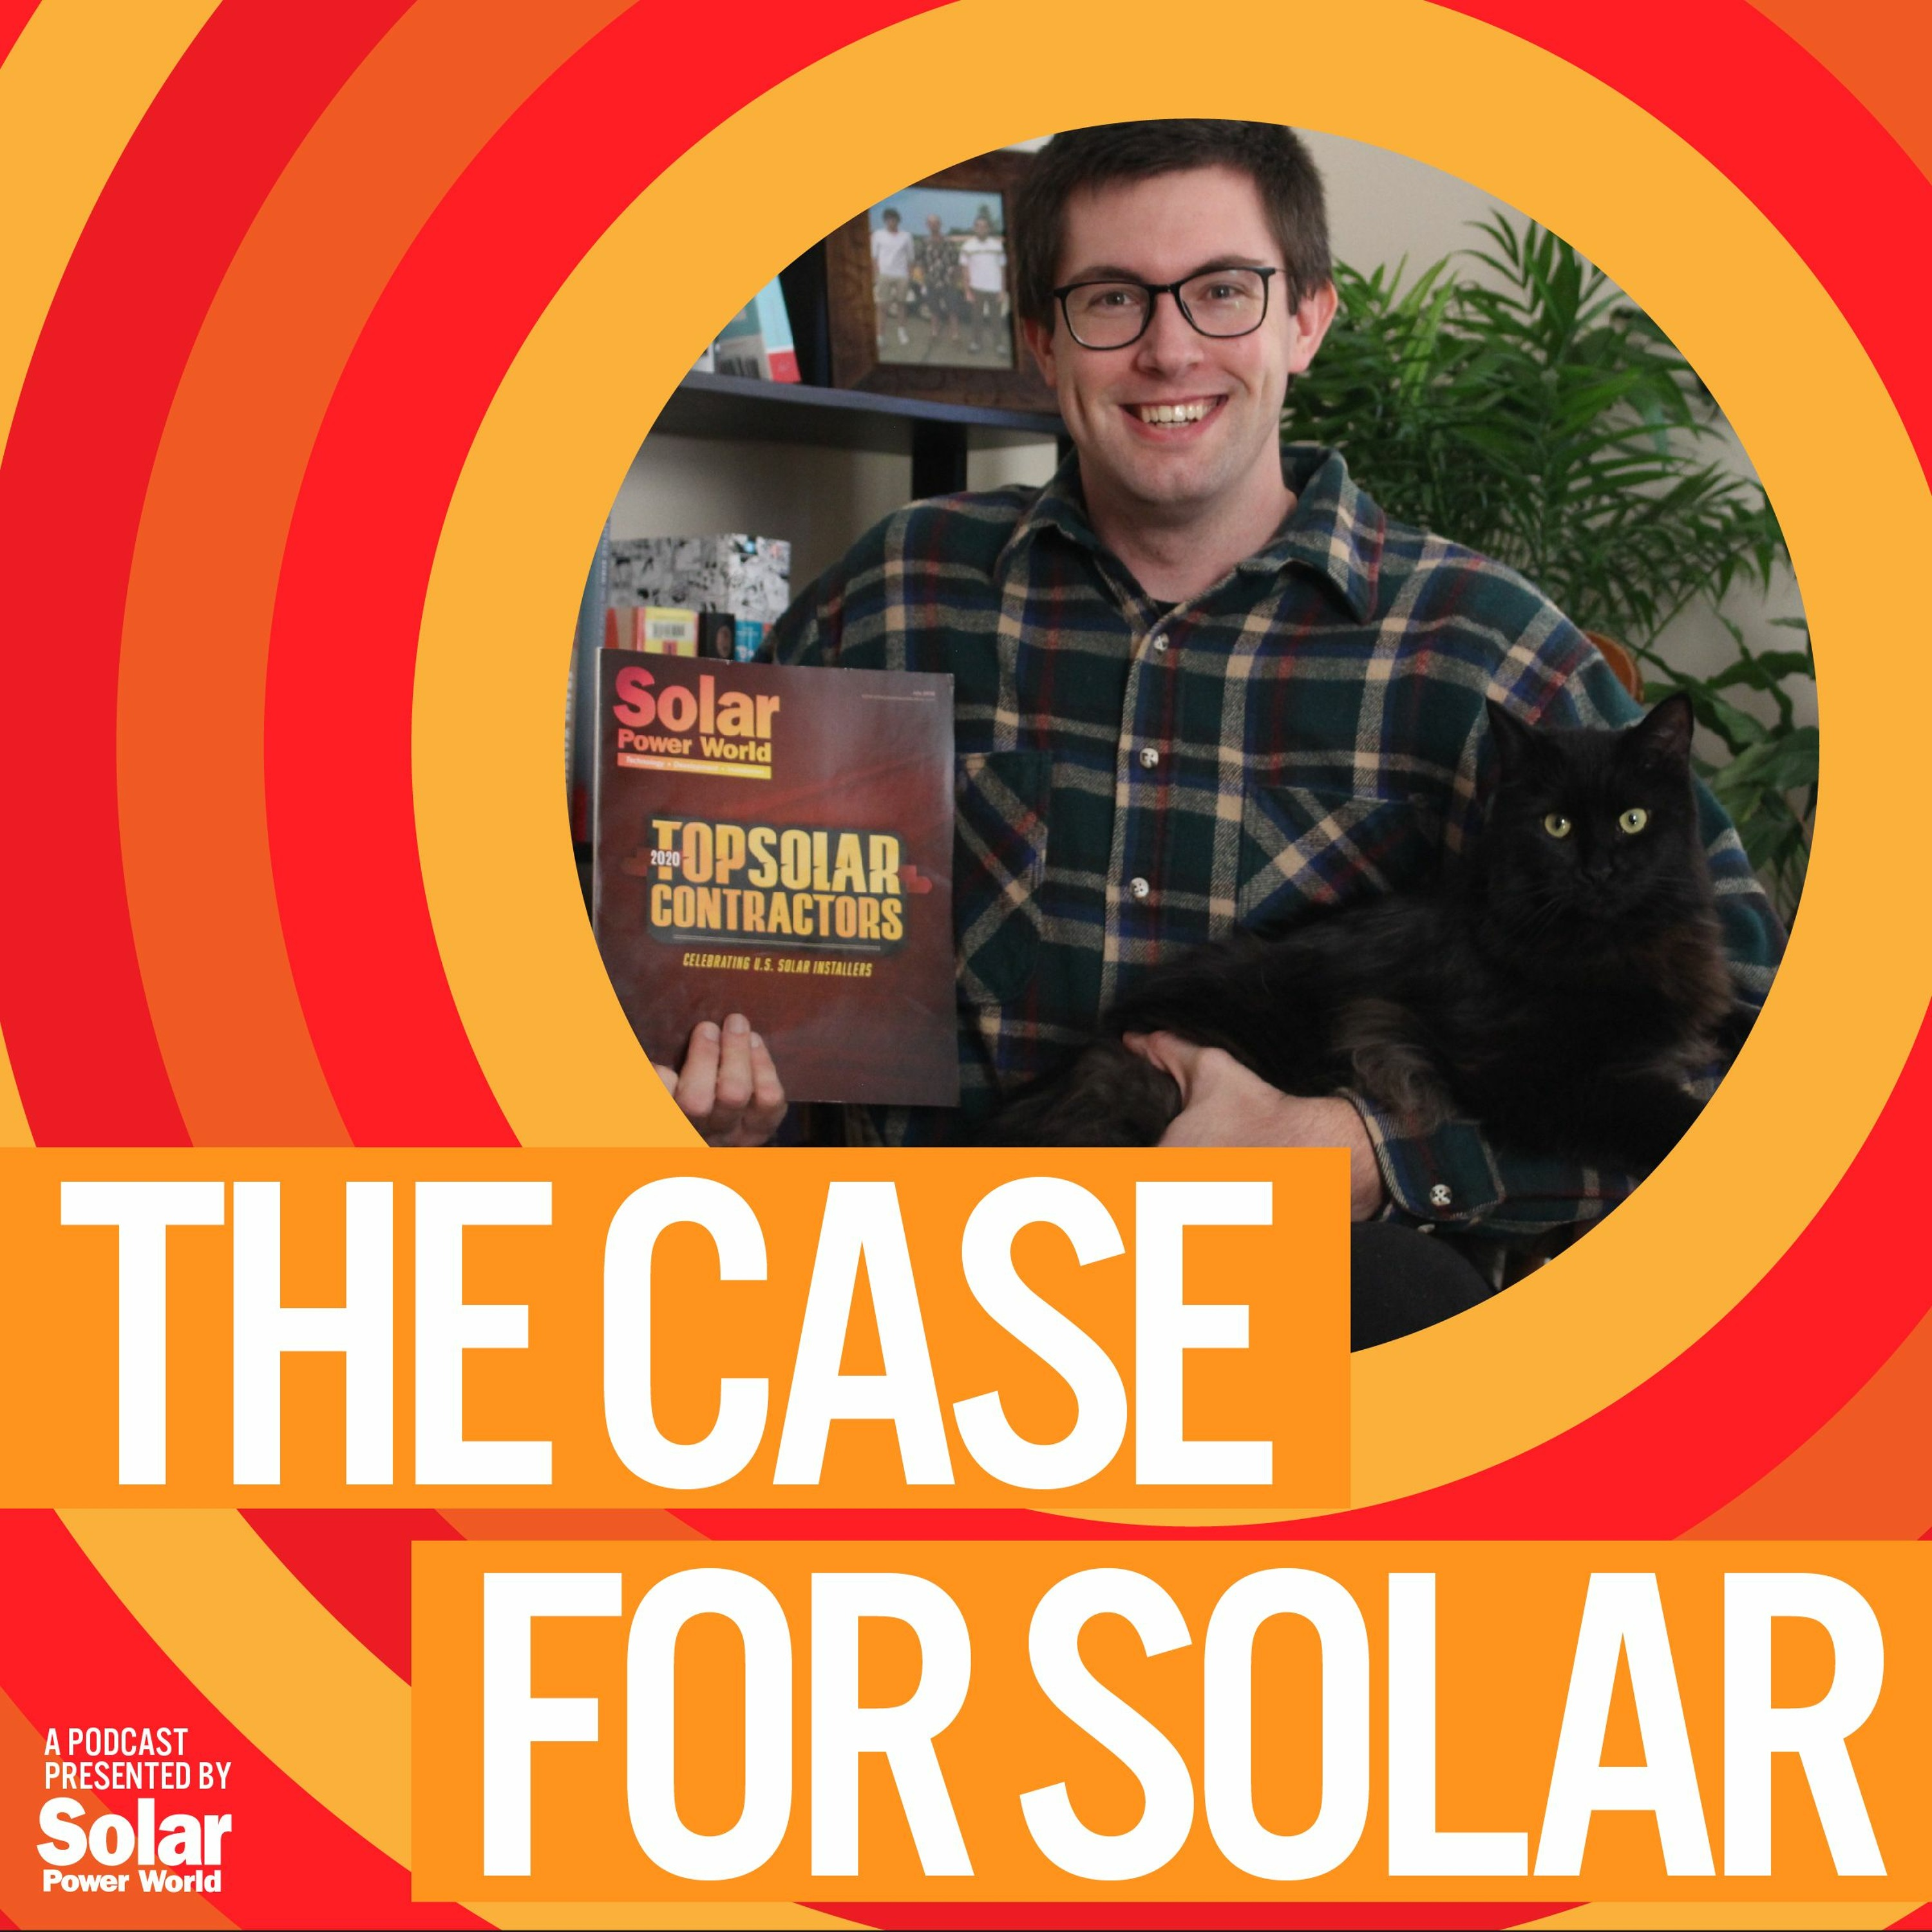 The Case for Solar: A CEO demonstrates solar + storage at his home